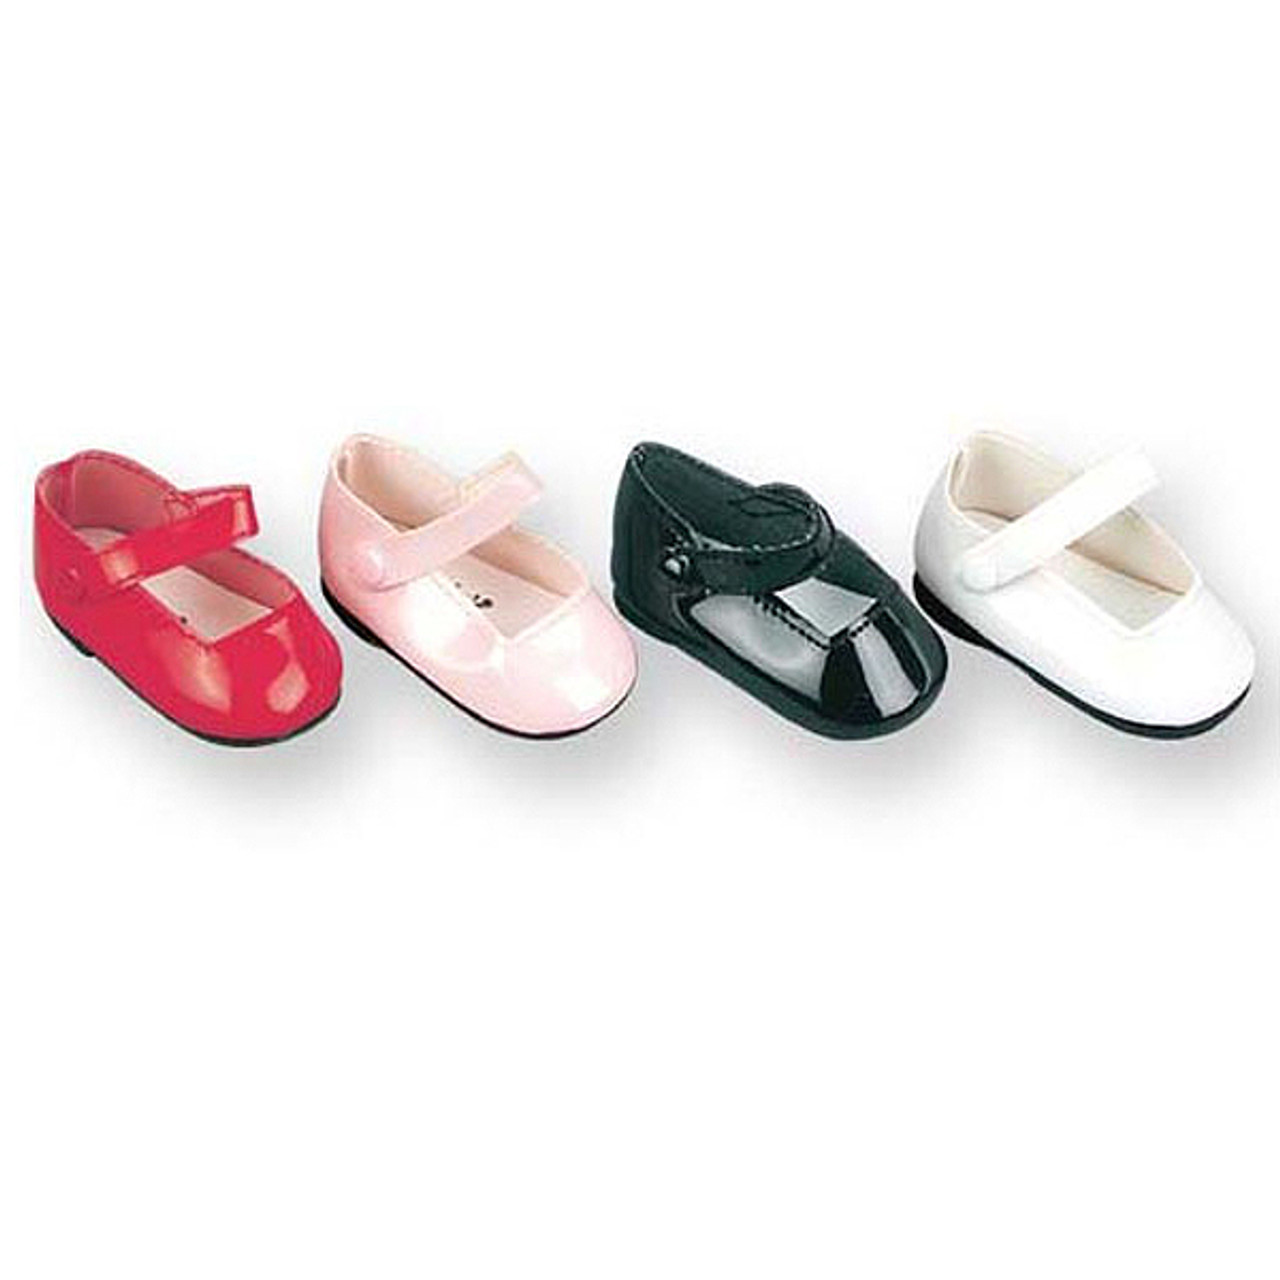 Fashion Black Mary Janes for Girl 18 inch Doll Shoes for B*dm